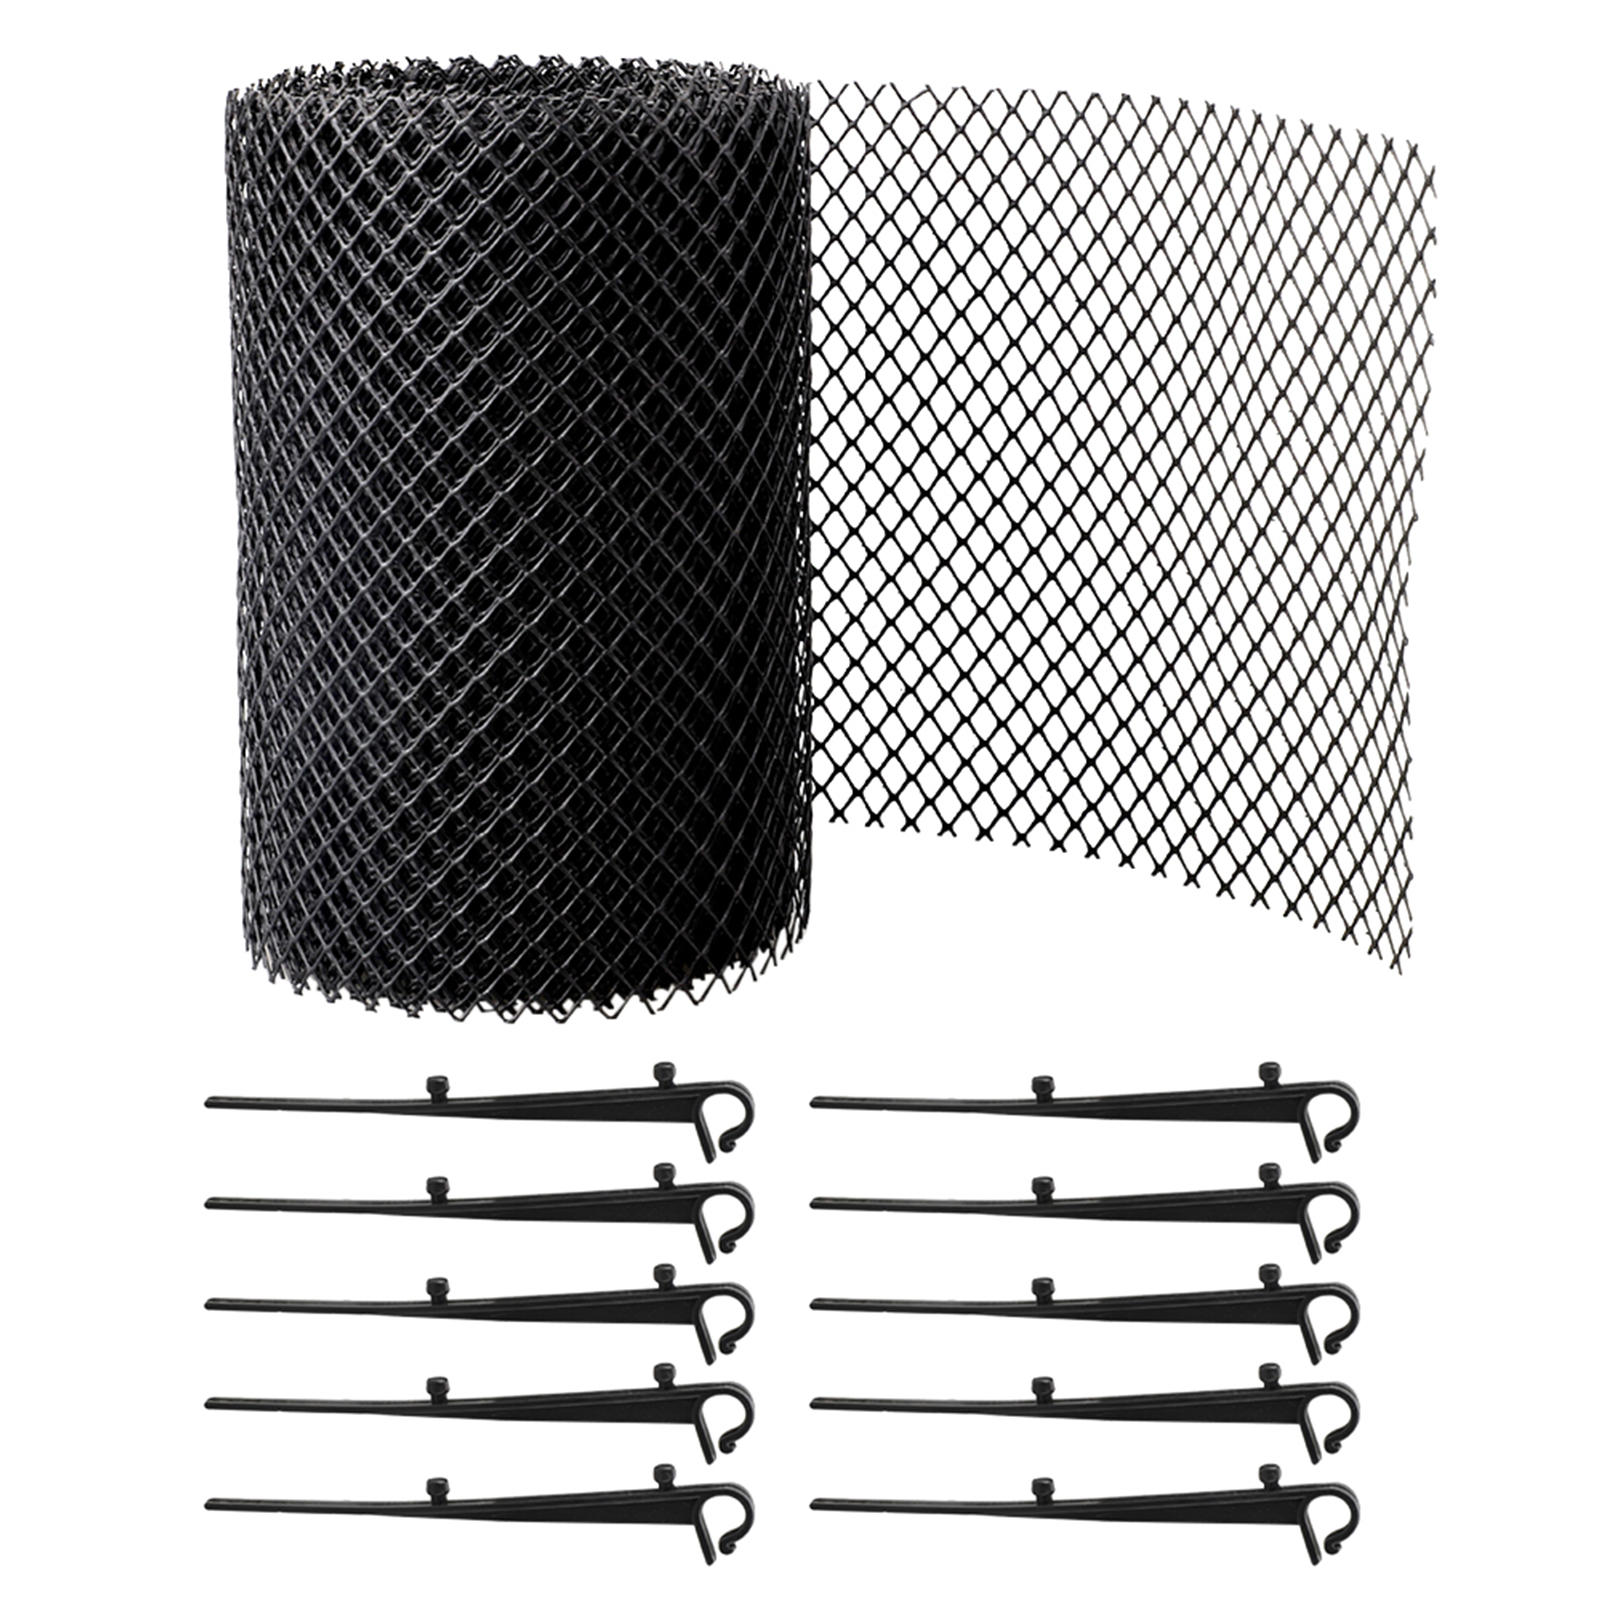 2019 New Style Reduce Overflow Floor Garden Mesh Cover Balcony Stops Leaves Flexible Drain Anti Clogging With Stakes Gutter Guard Easy Install